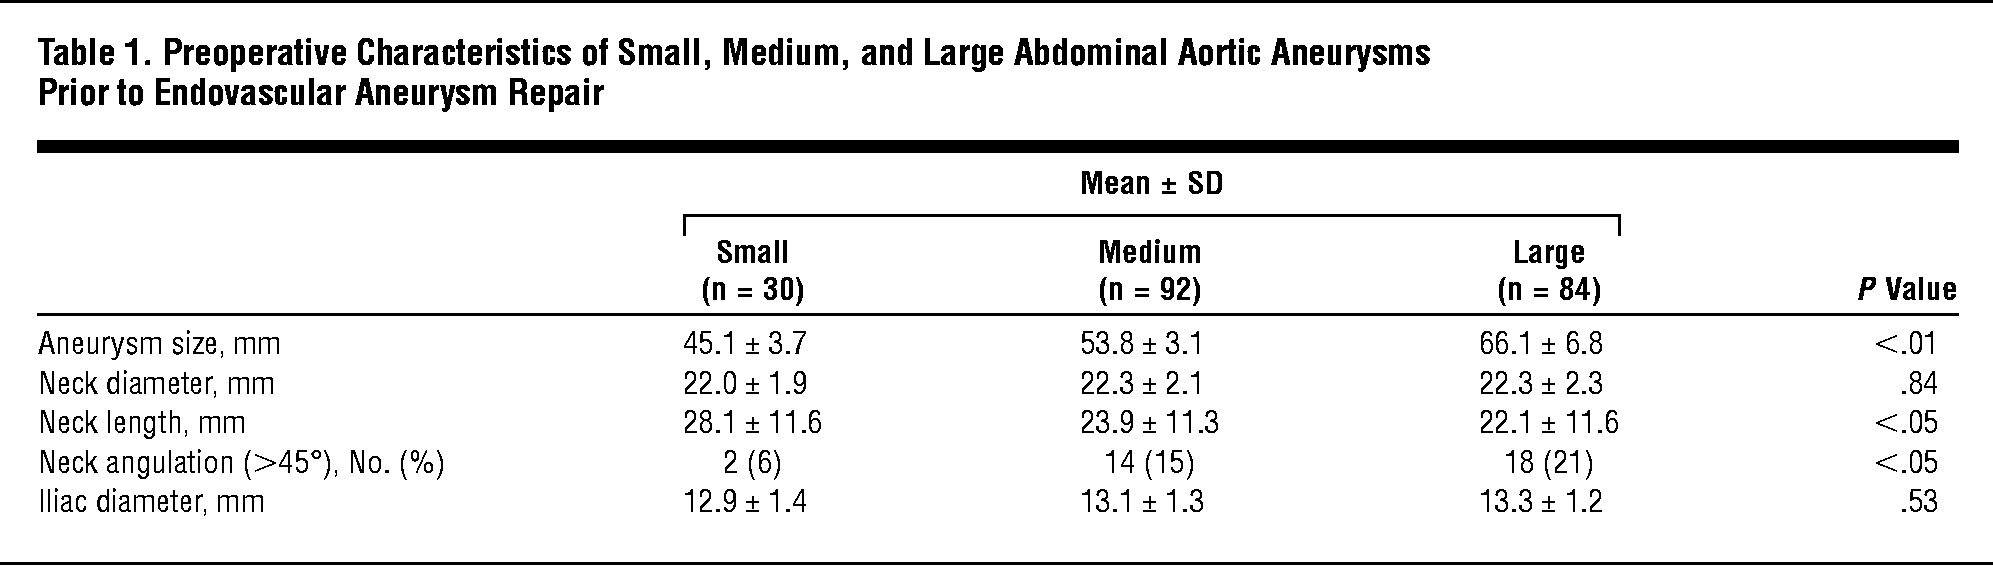 Preoperative Characteristics Of Small Medium And Large Abdominal Aortic Aneurysms Prior To Endovascular Aneurysm